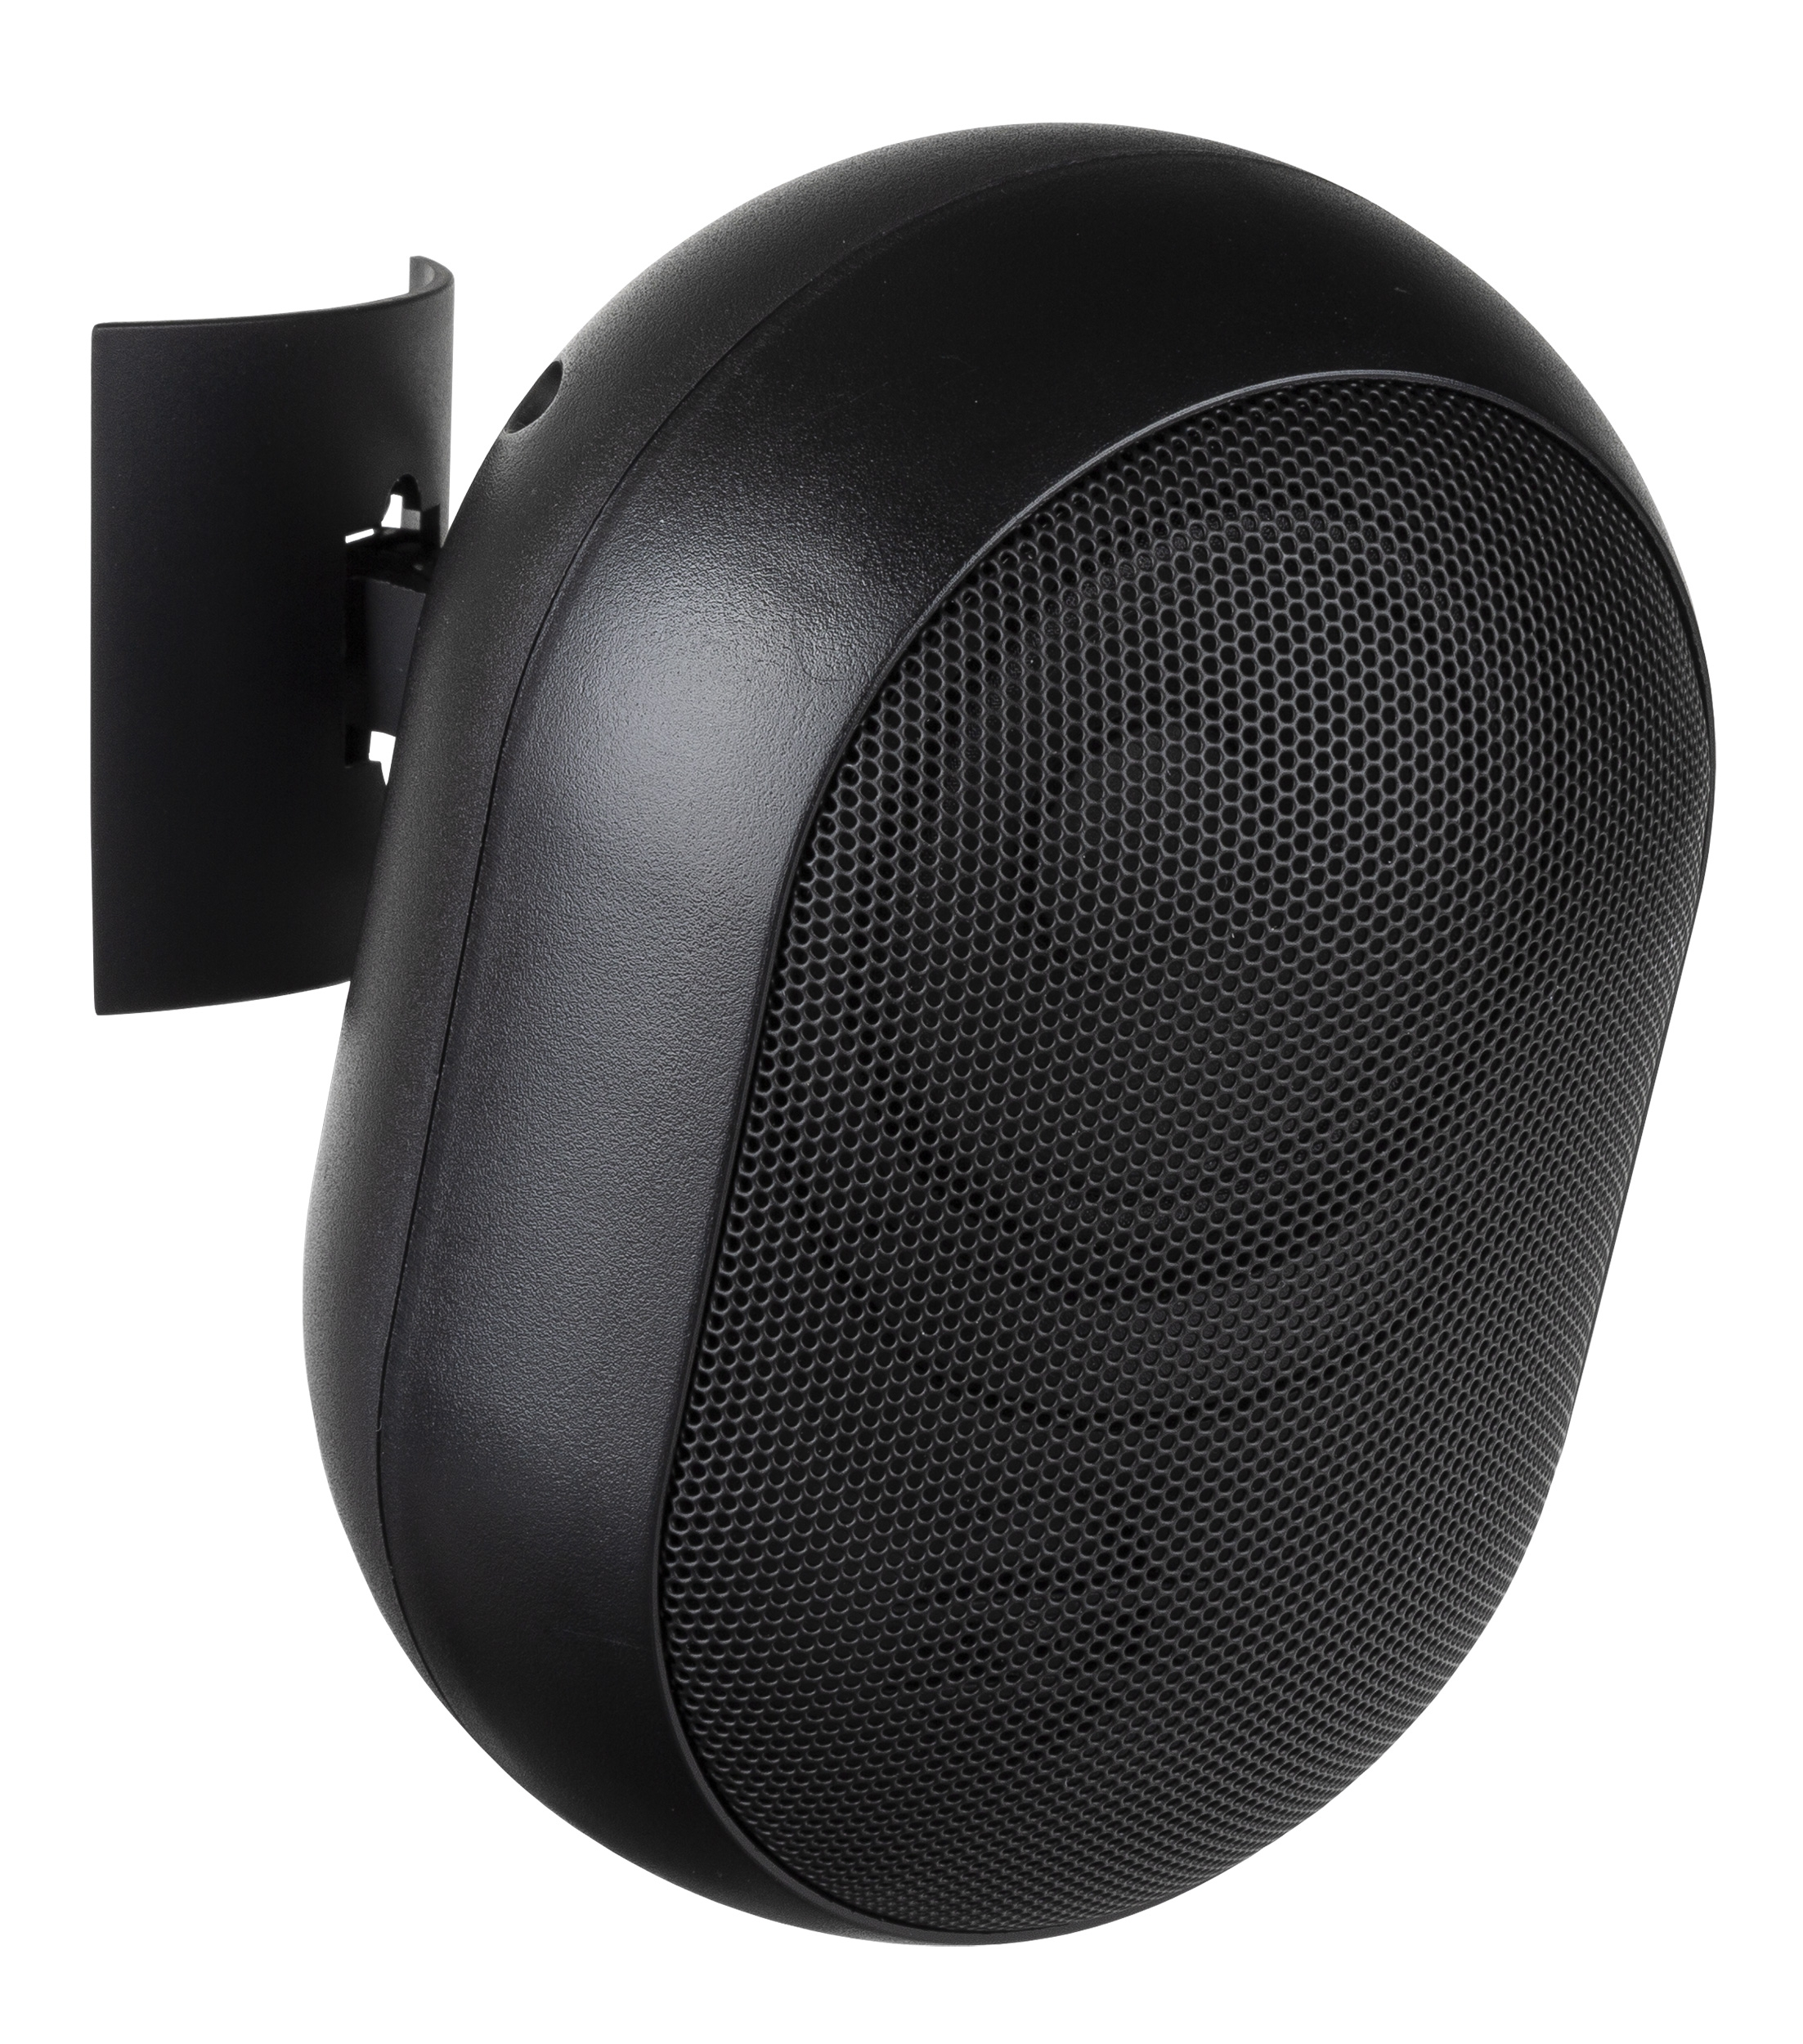 Tropical speaker 100V 7.5~15W 16 Ohms - Black - IP55